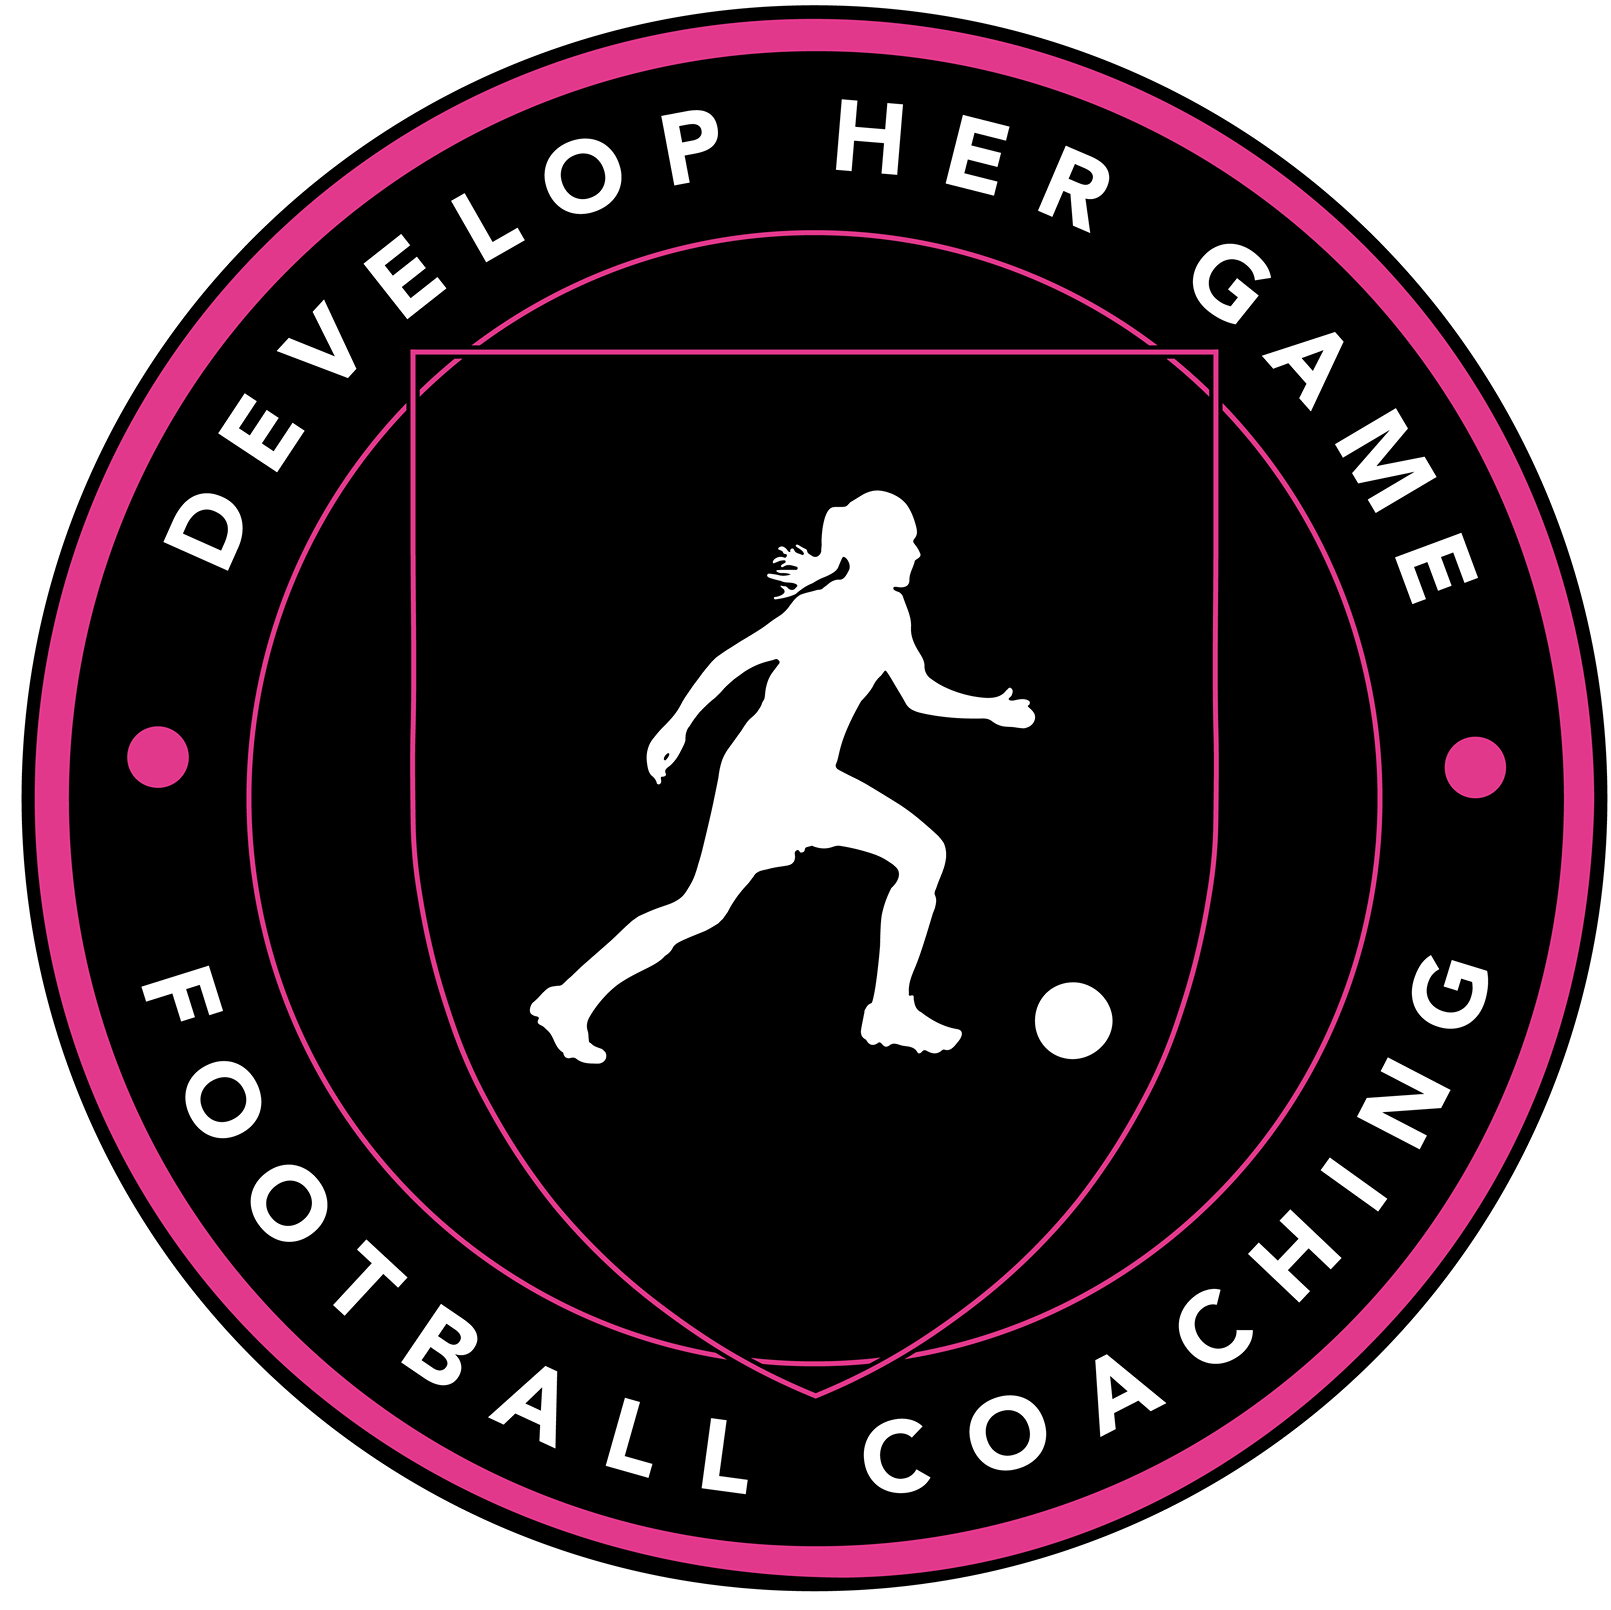 Develop her Game